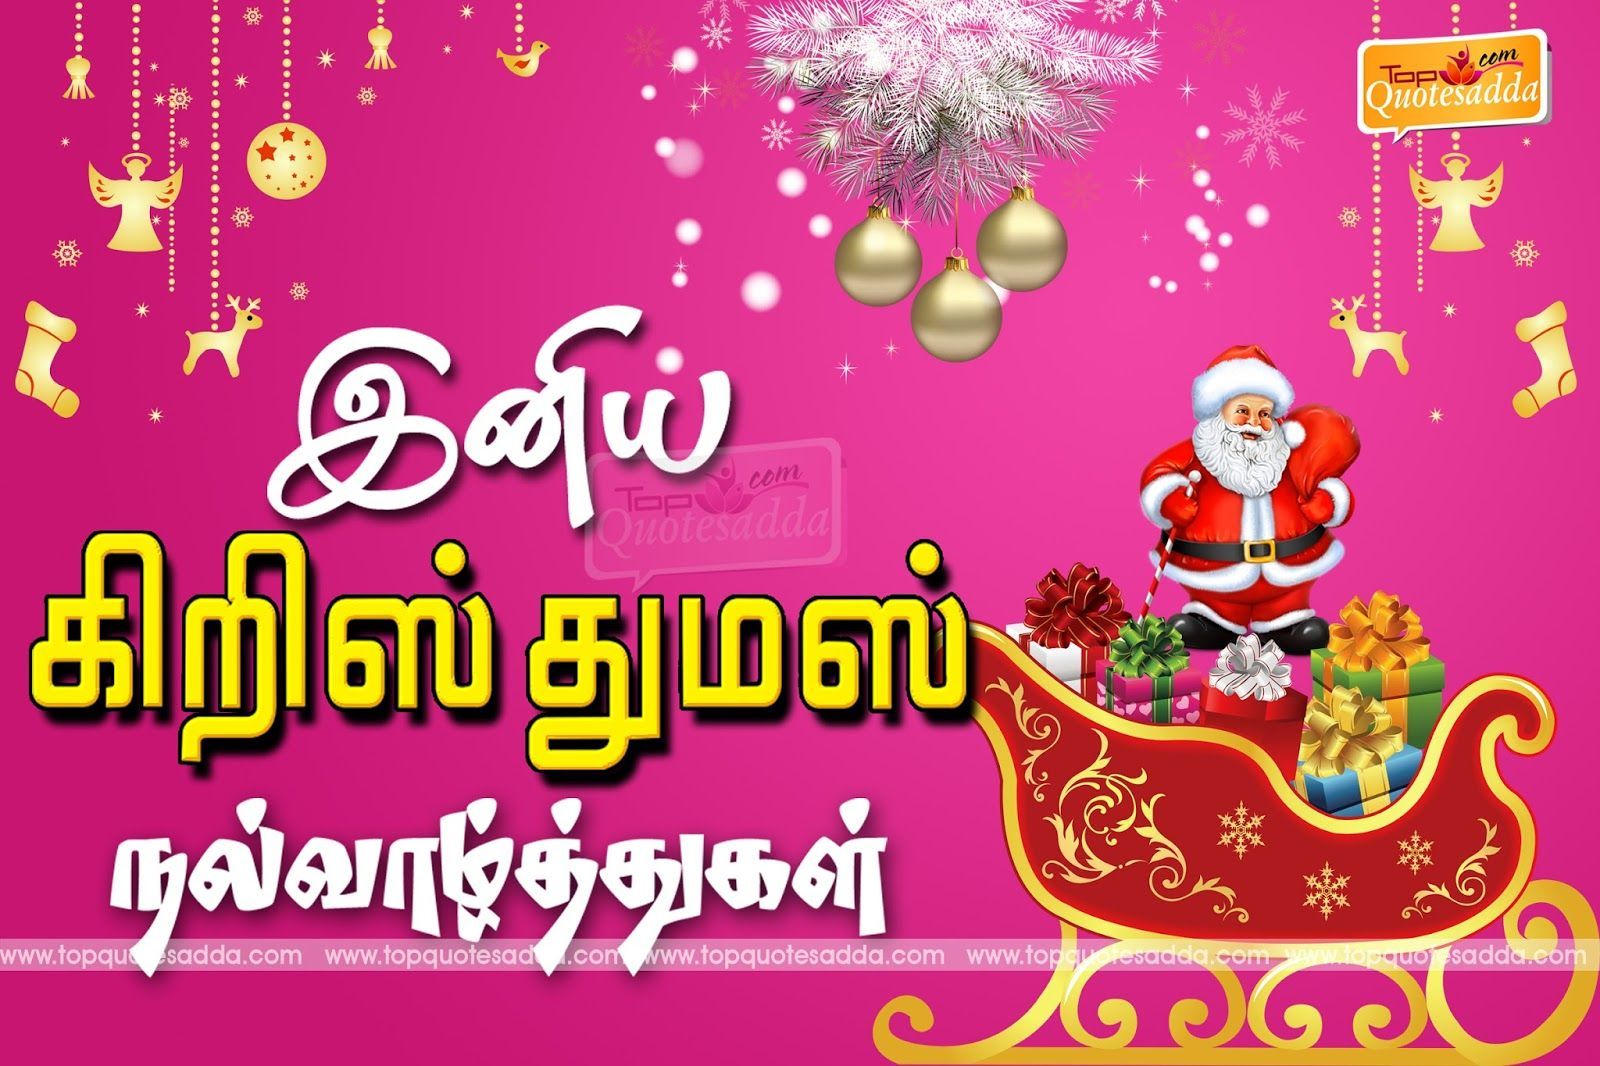 Happy christmas tamil quotes happy christmas tamil quotes sayings happy christmas tamil quotes happy christmas tamil quotes sayings happy christmas tamil quotes sms happy christmas kristyandbryce Choice Image